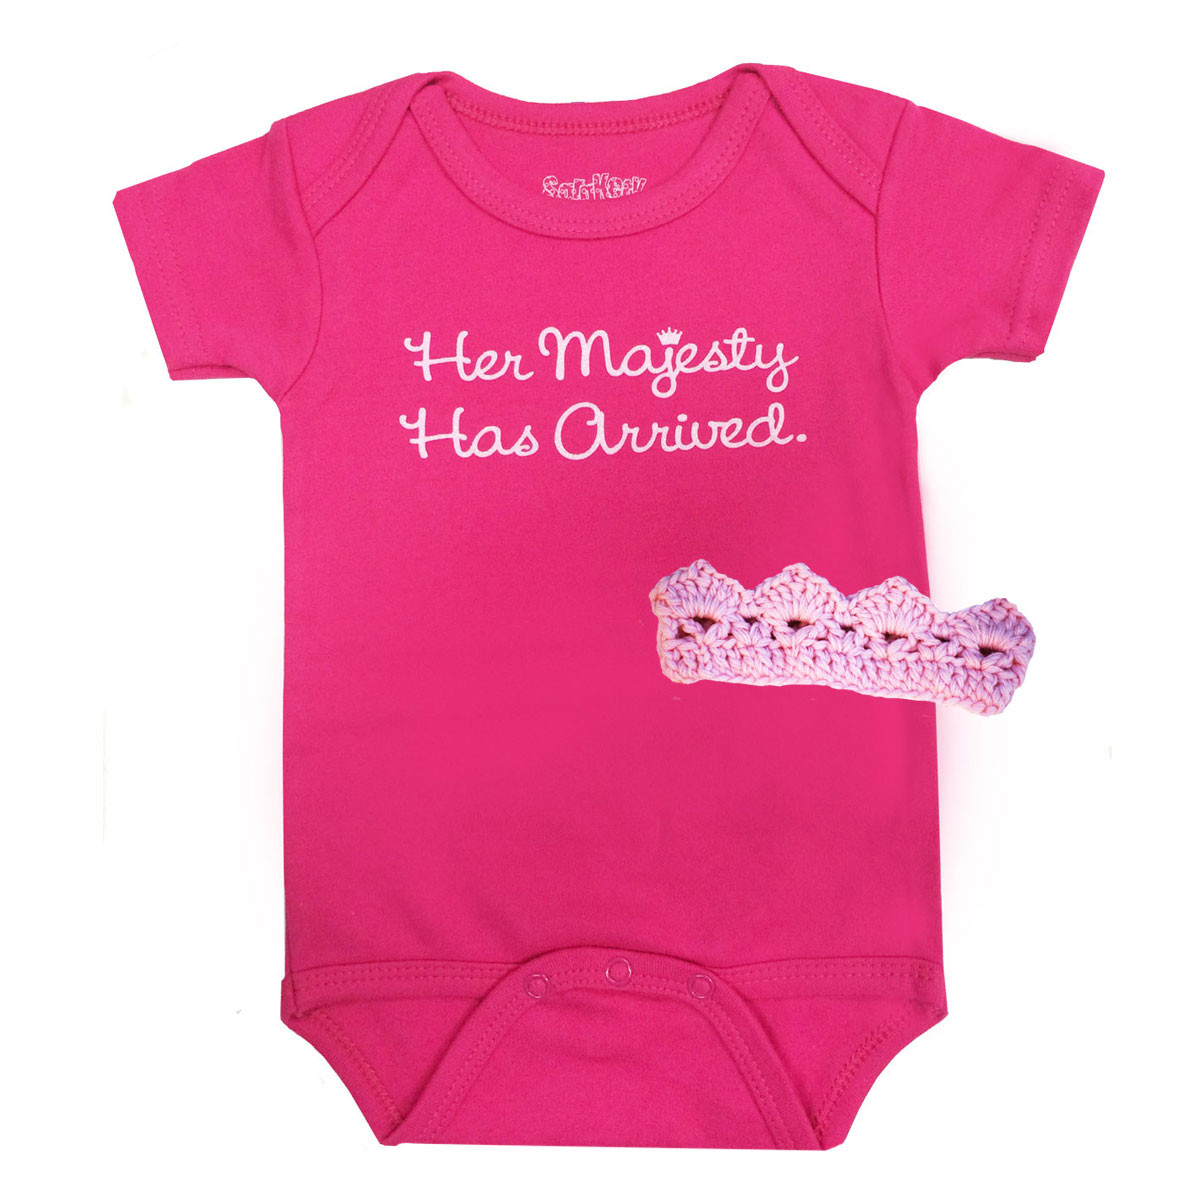 08e073b6d Her Majesty Has Arrived Baby Onesie and Crown Baby Gift Set | Baby ...